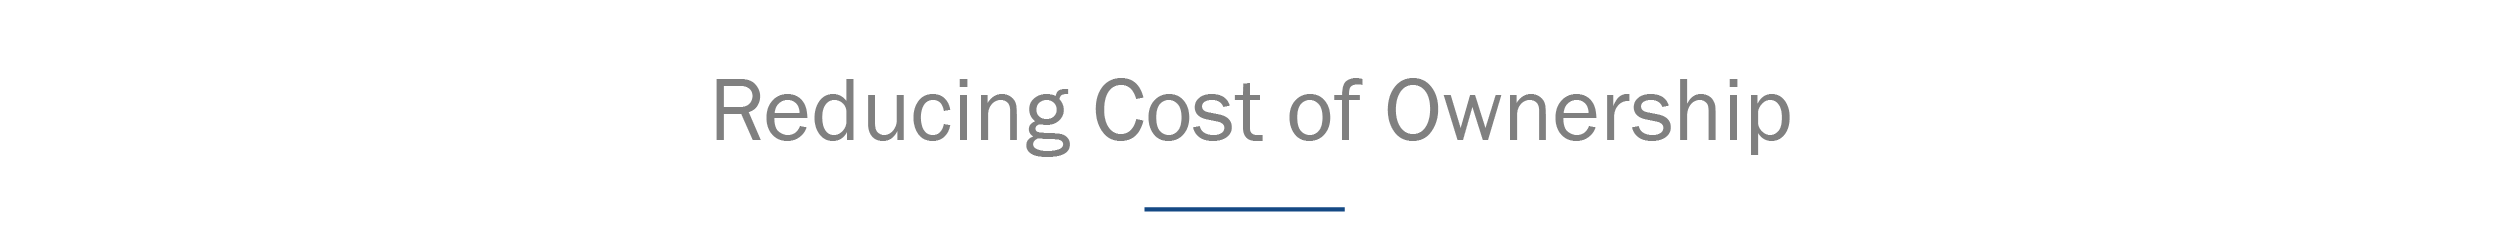 header_reduce cost of ownership